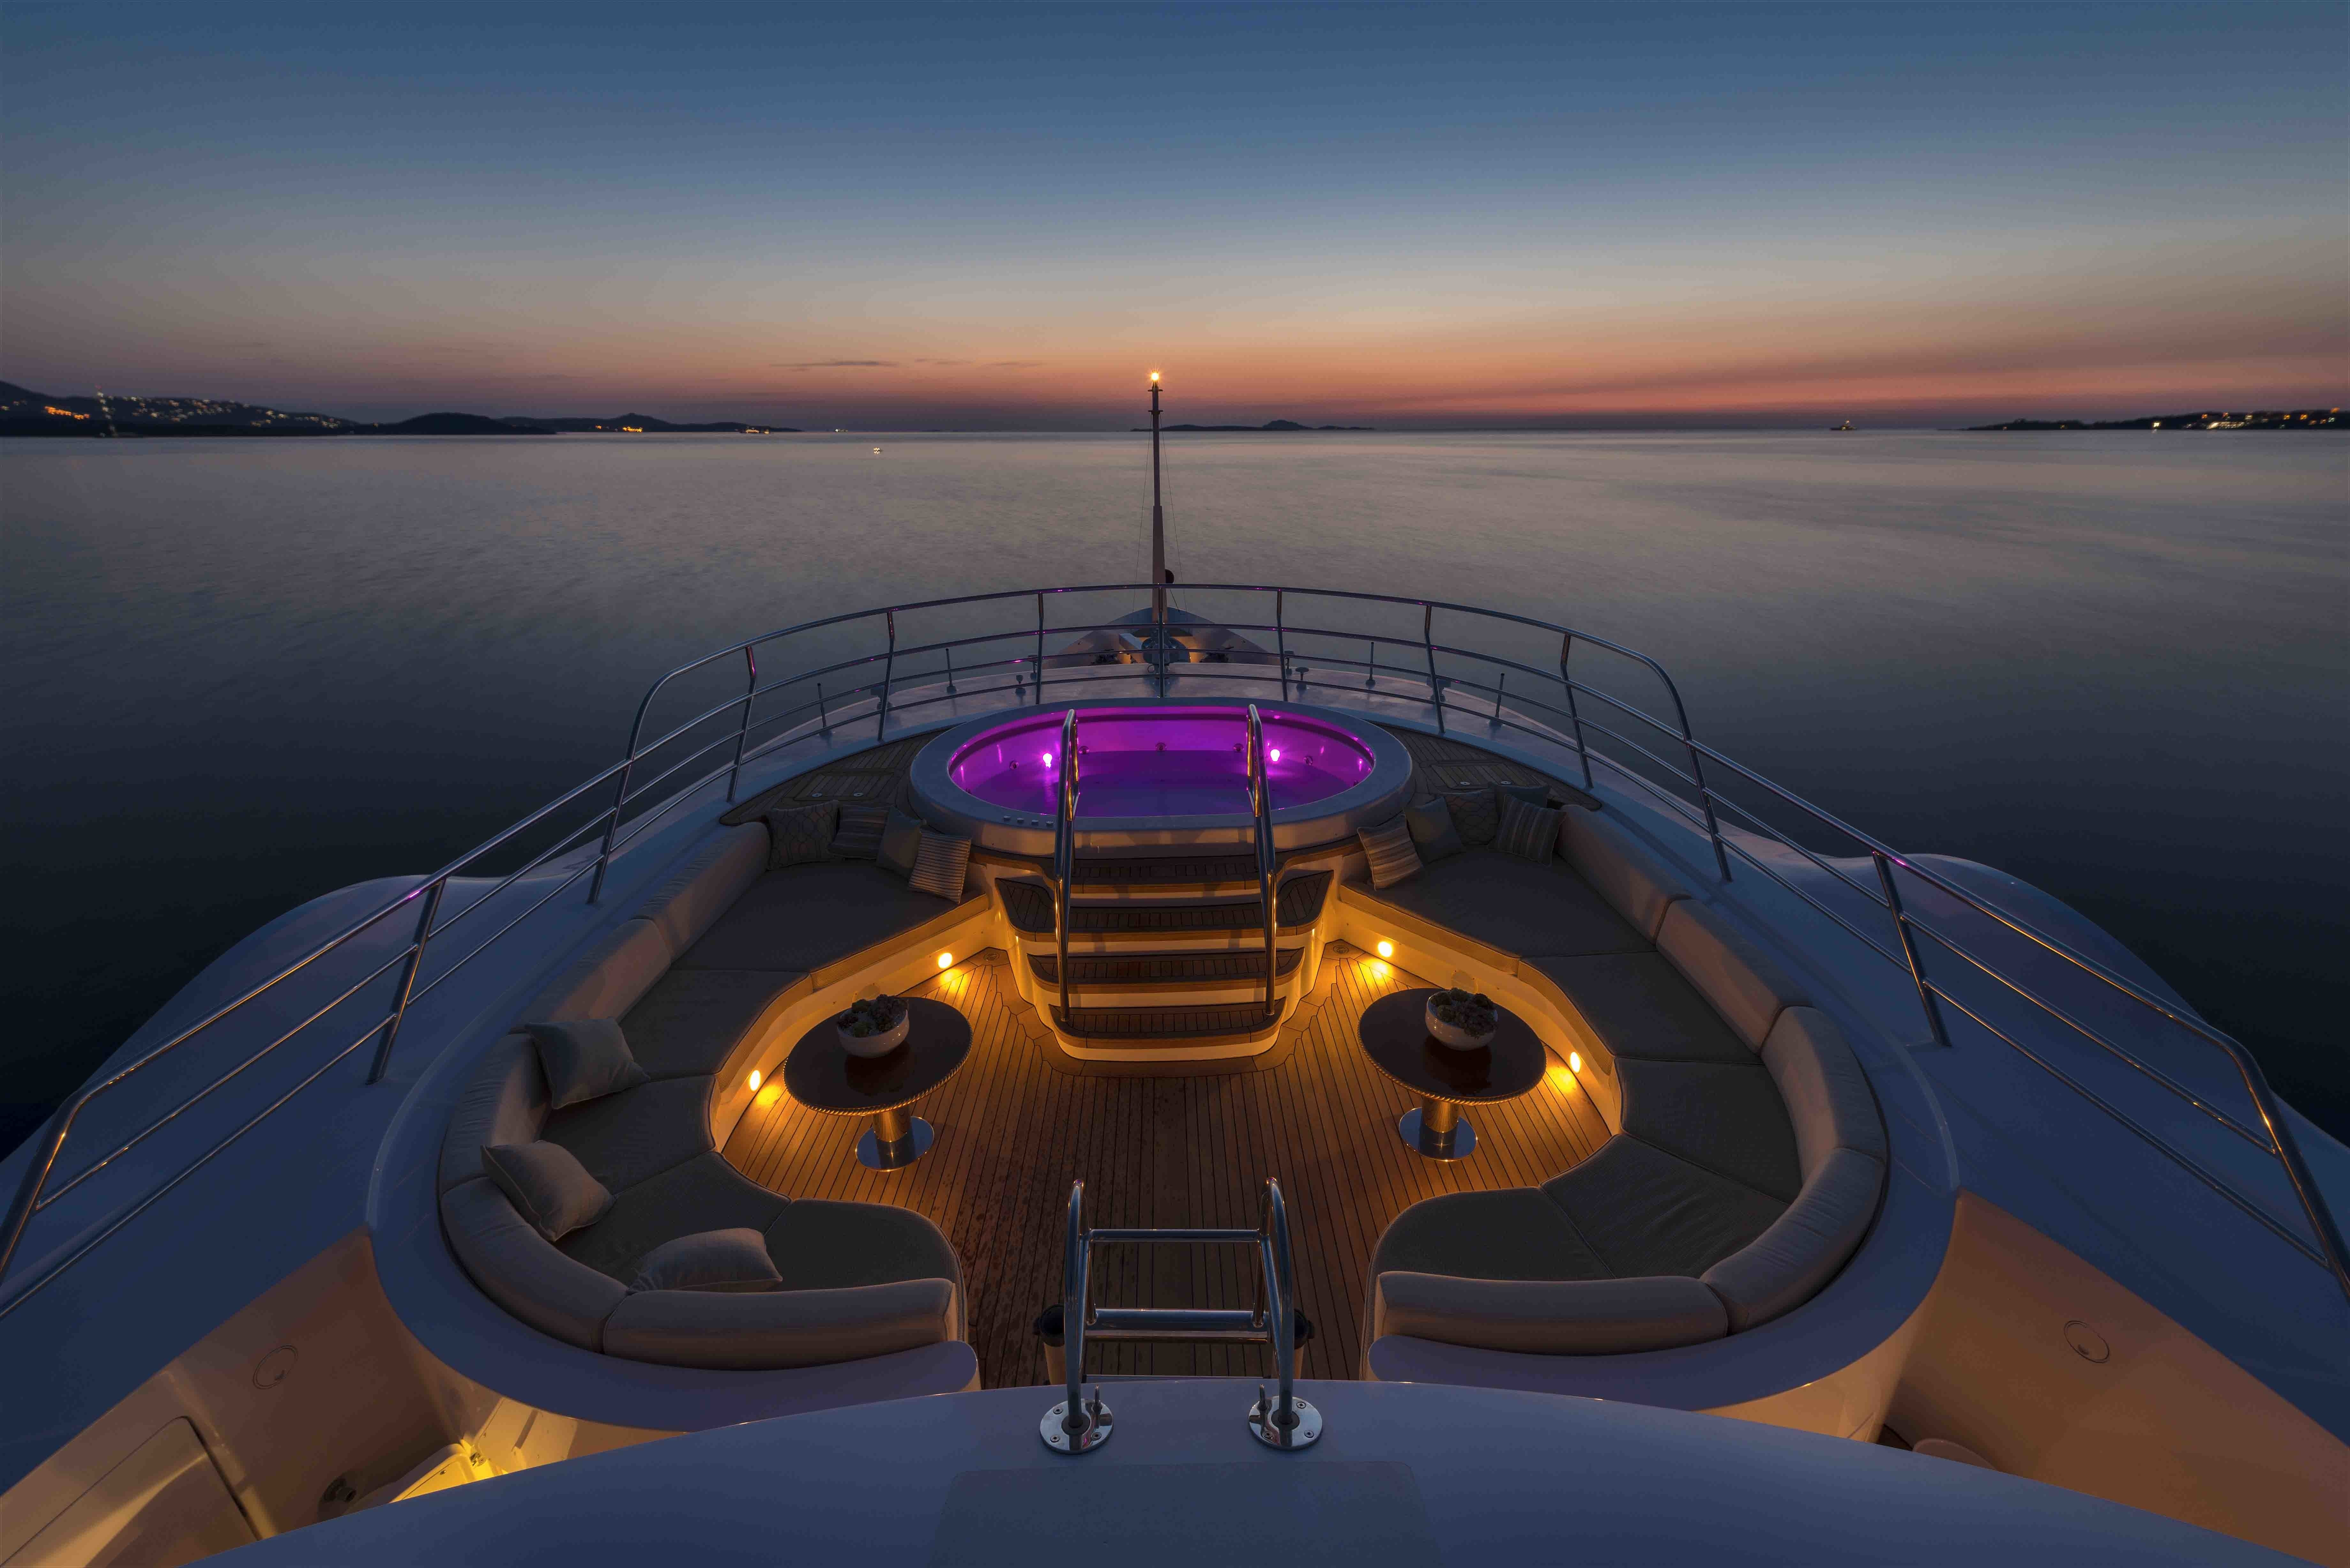 sundeck by night with Jacuzzi lit up